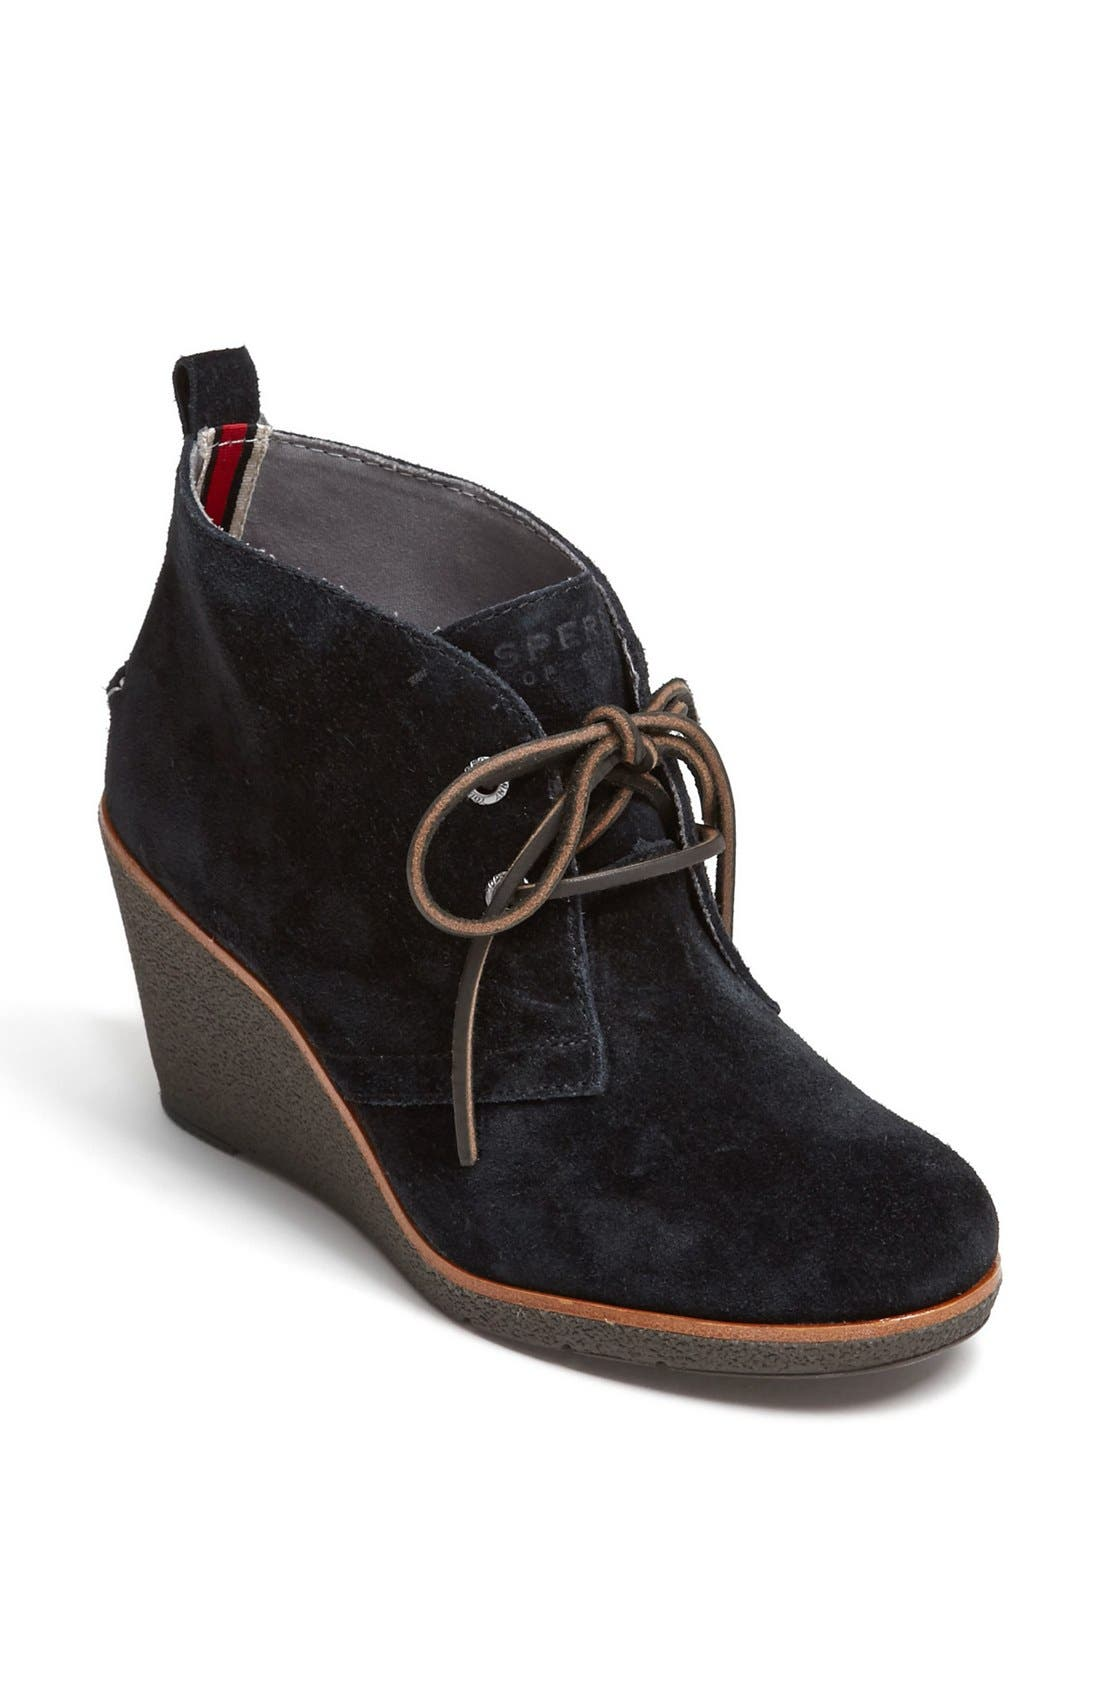 Top Sider<sup>®</sup> 'Harlow' Bootie, Main, color, 001